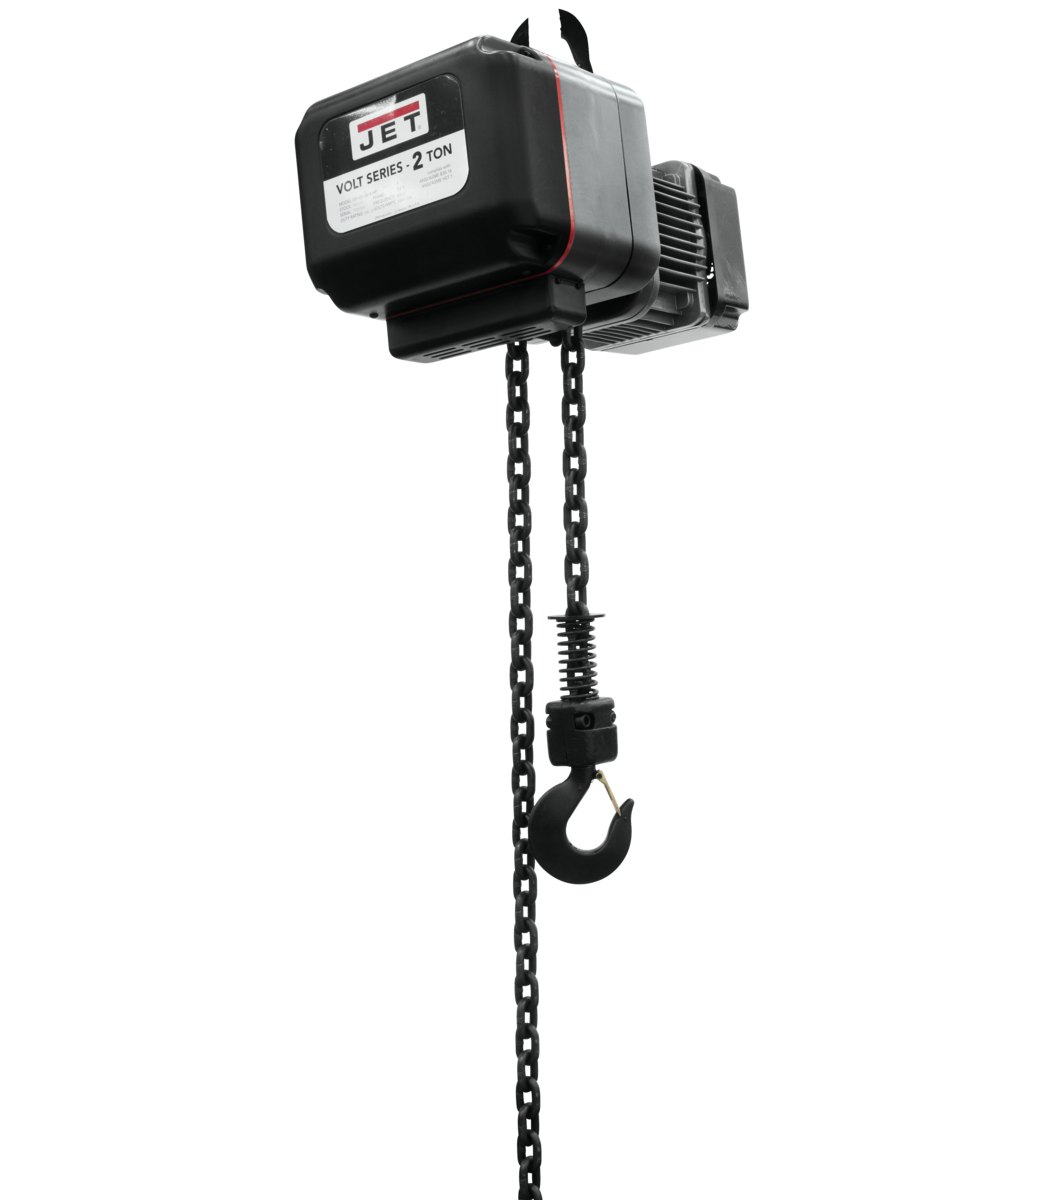 VOLT 2T VARIABLE-SPEED ELECTRIC HOIST 3PH 230V 15' LIFT